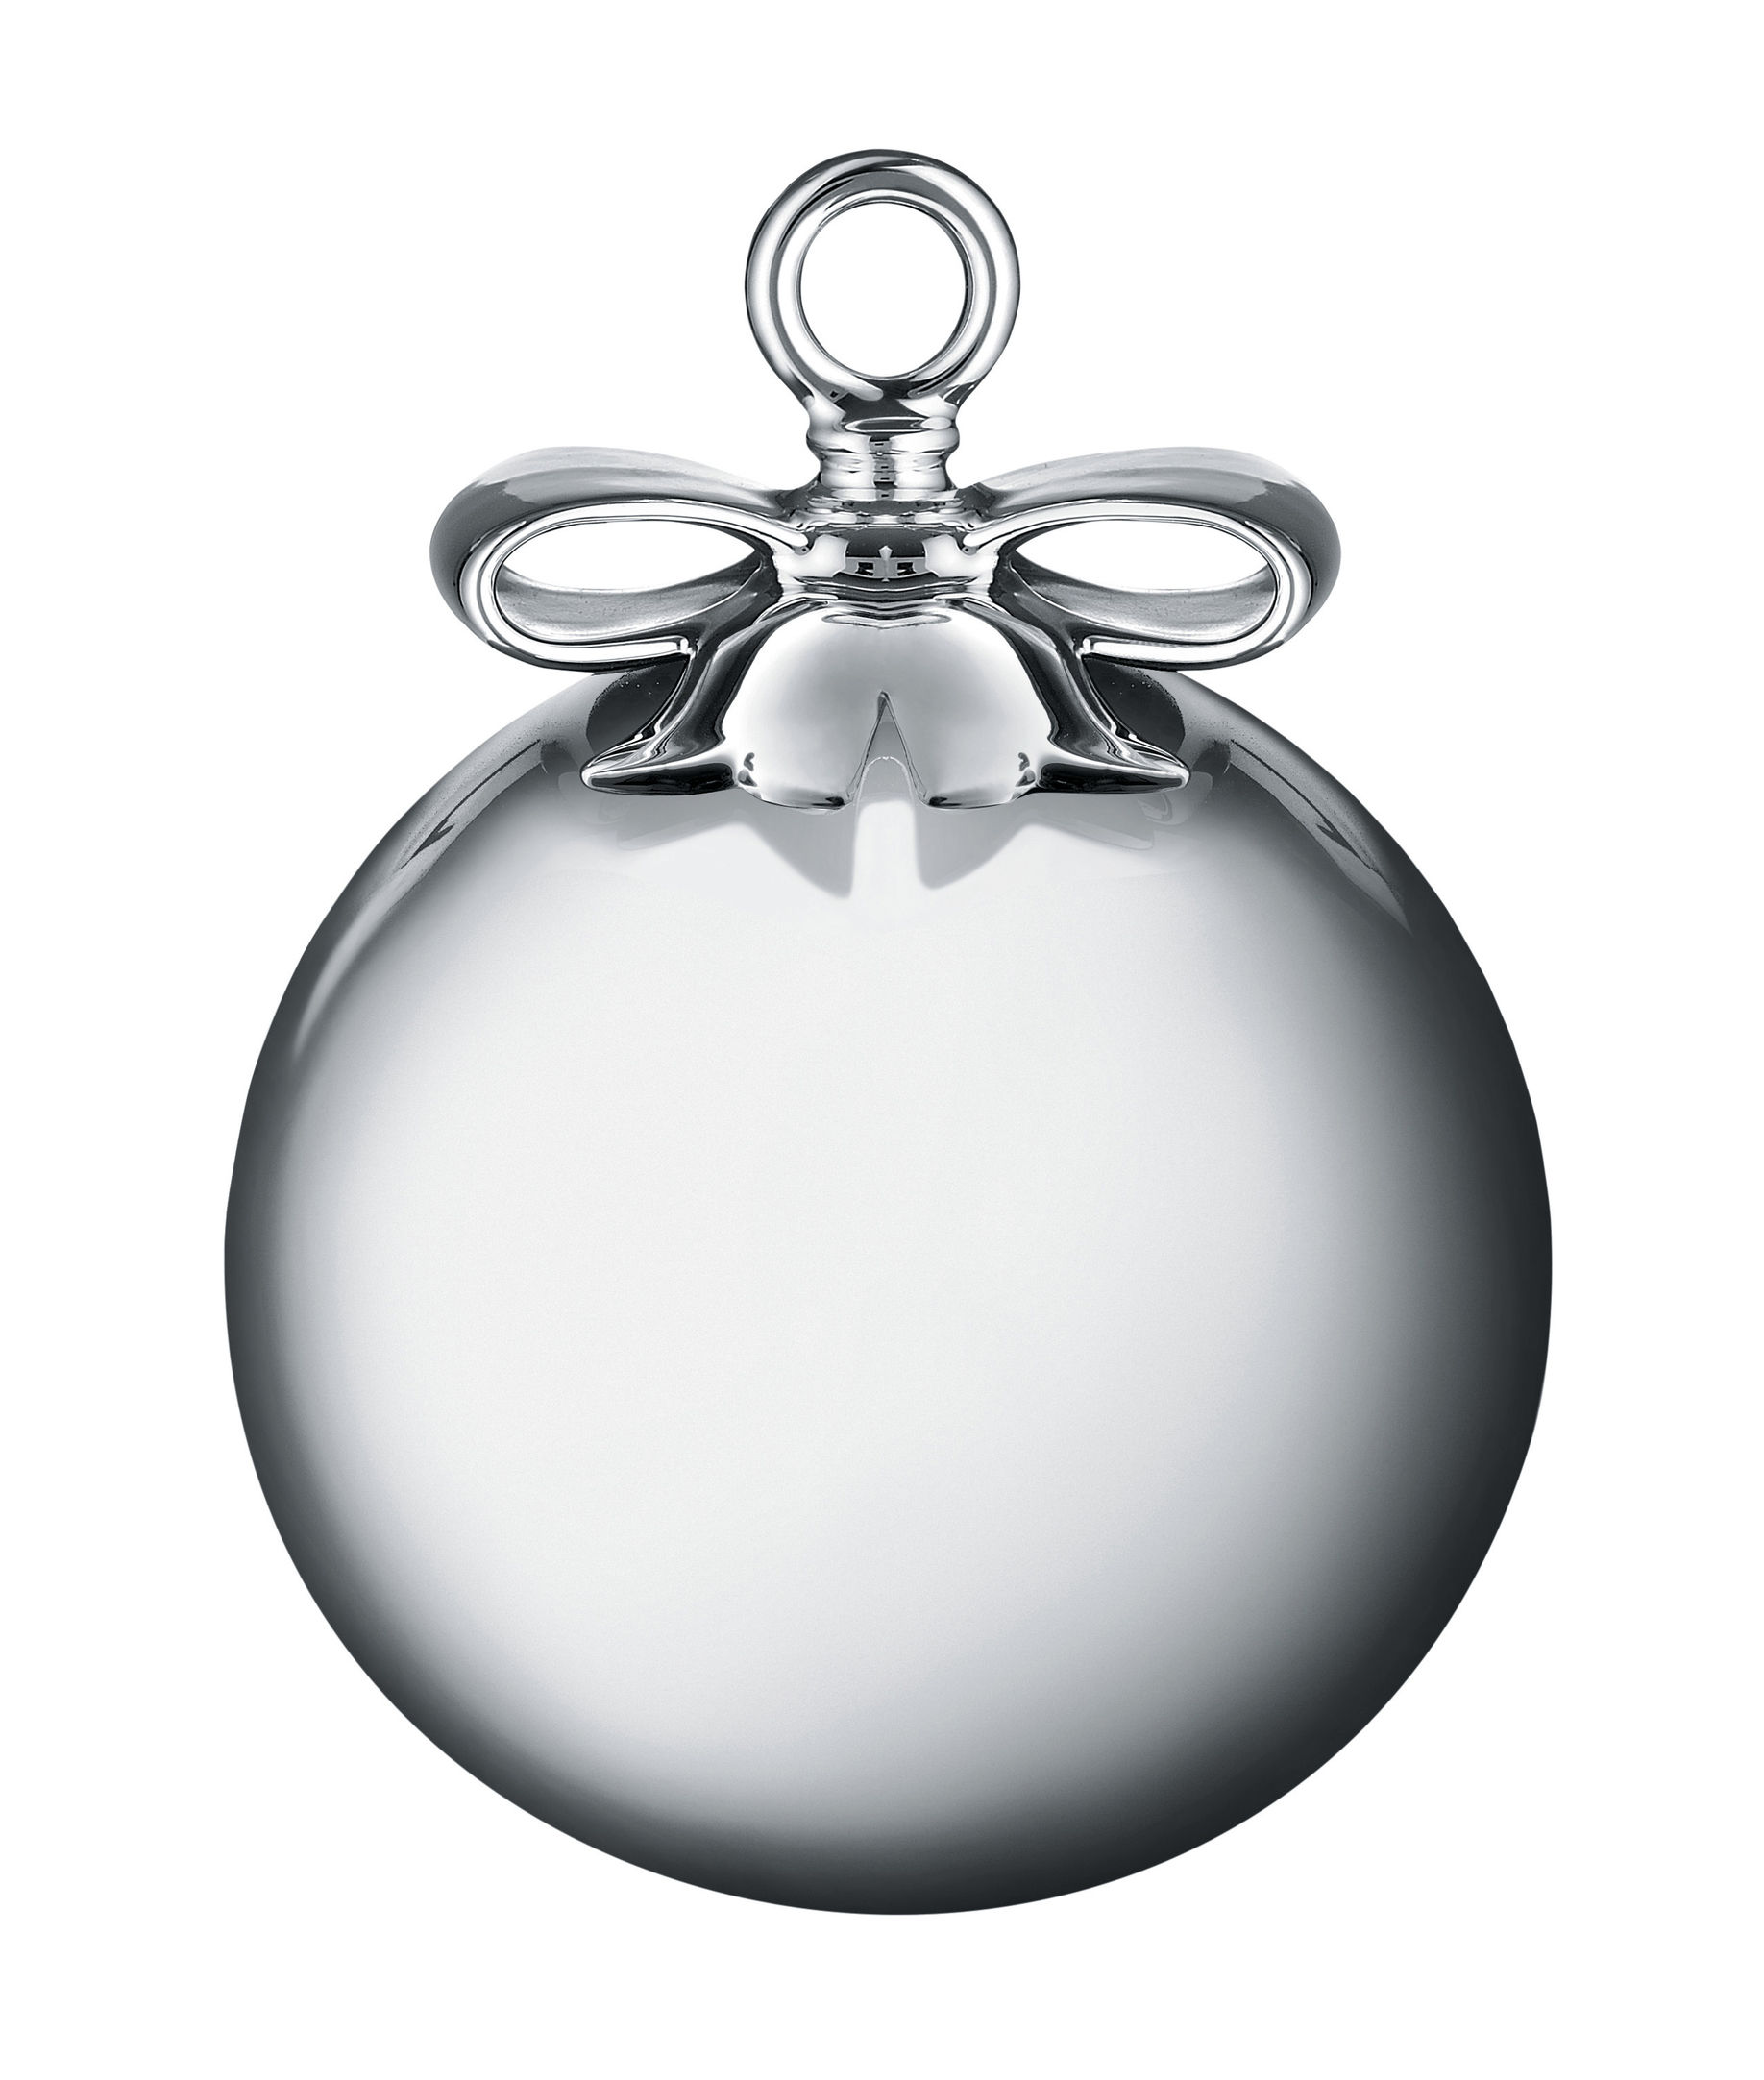 boule de no l dressed for x mas boule verre souffl porcelaine boule argent alessi. Black Bedroom Furniture Sets. Home Design Ideas